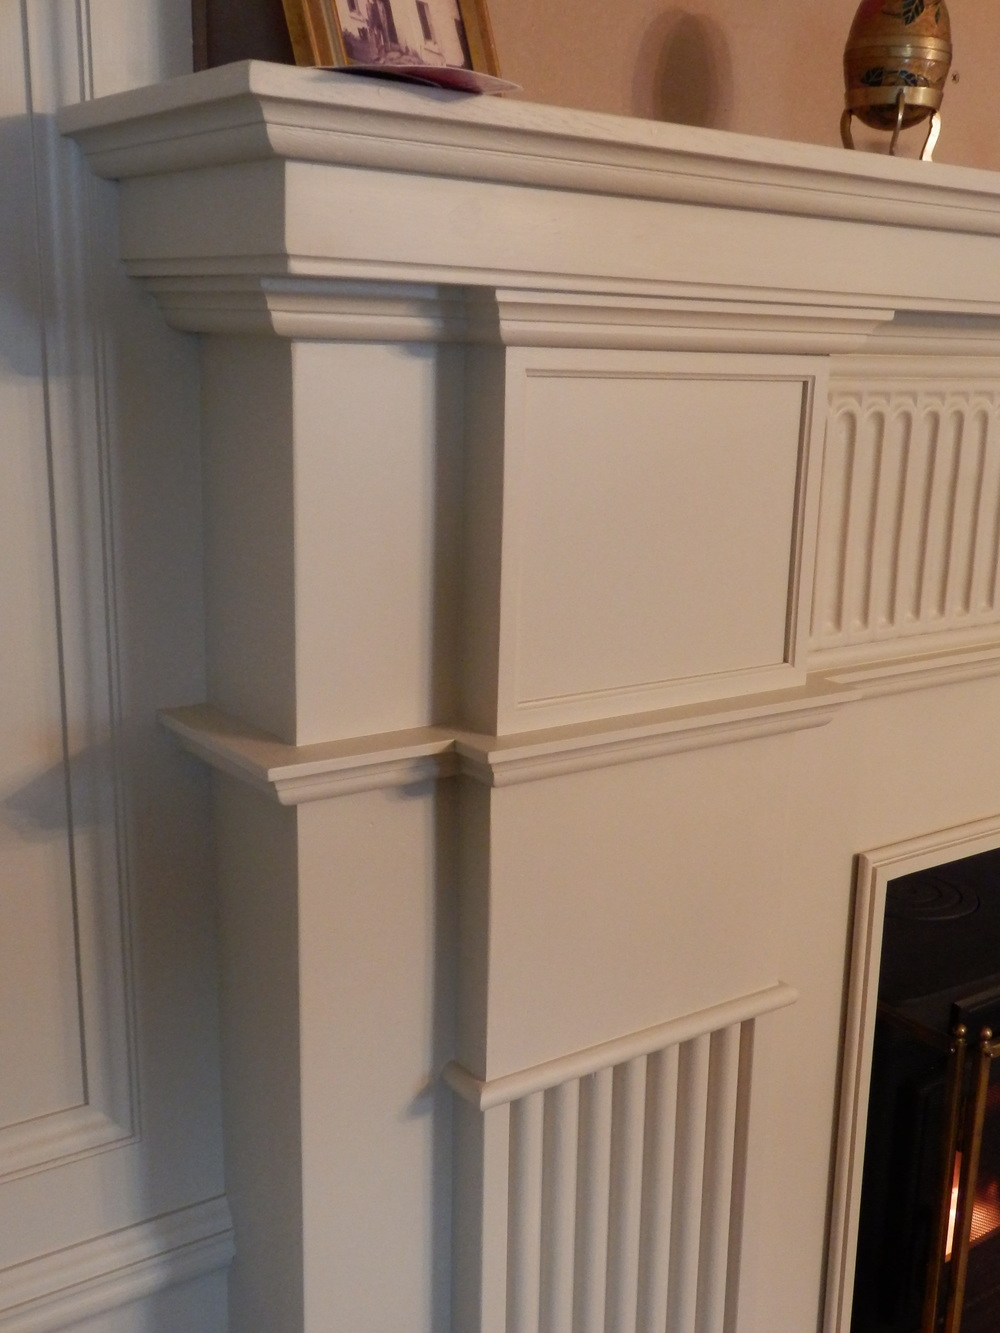 A closer view of the mouldings / detail.